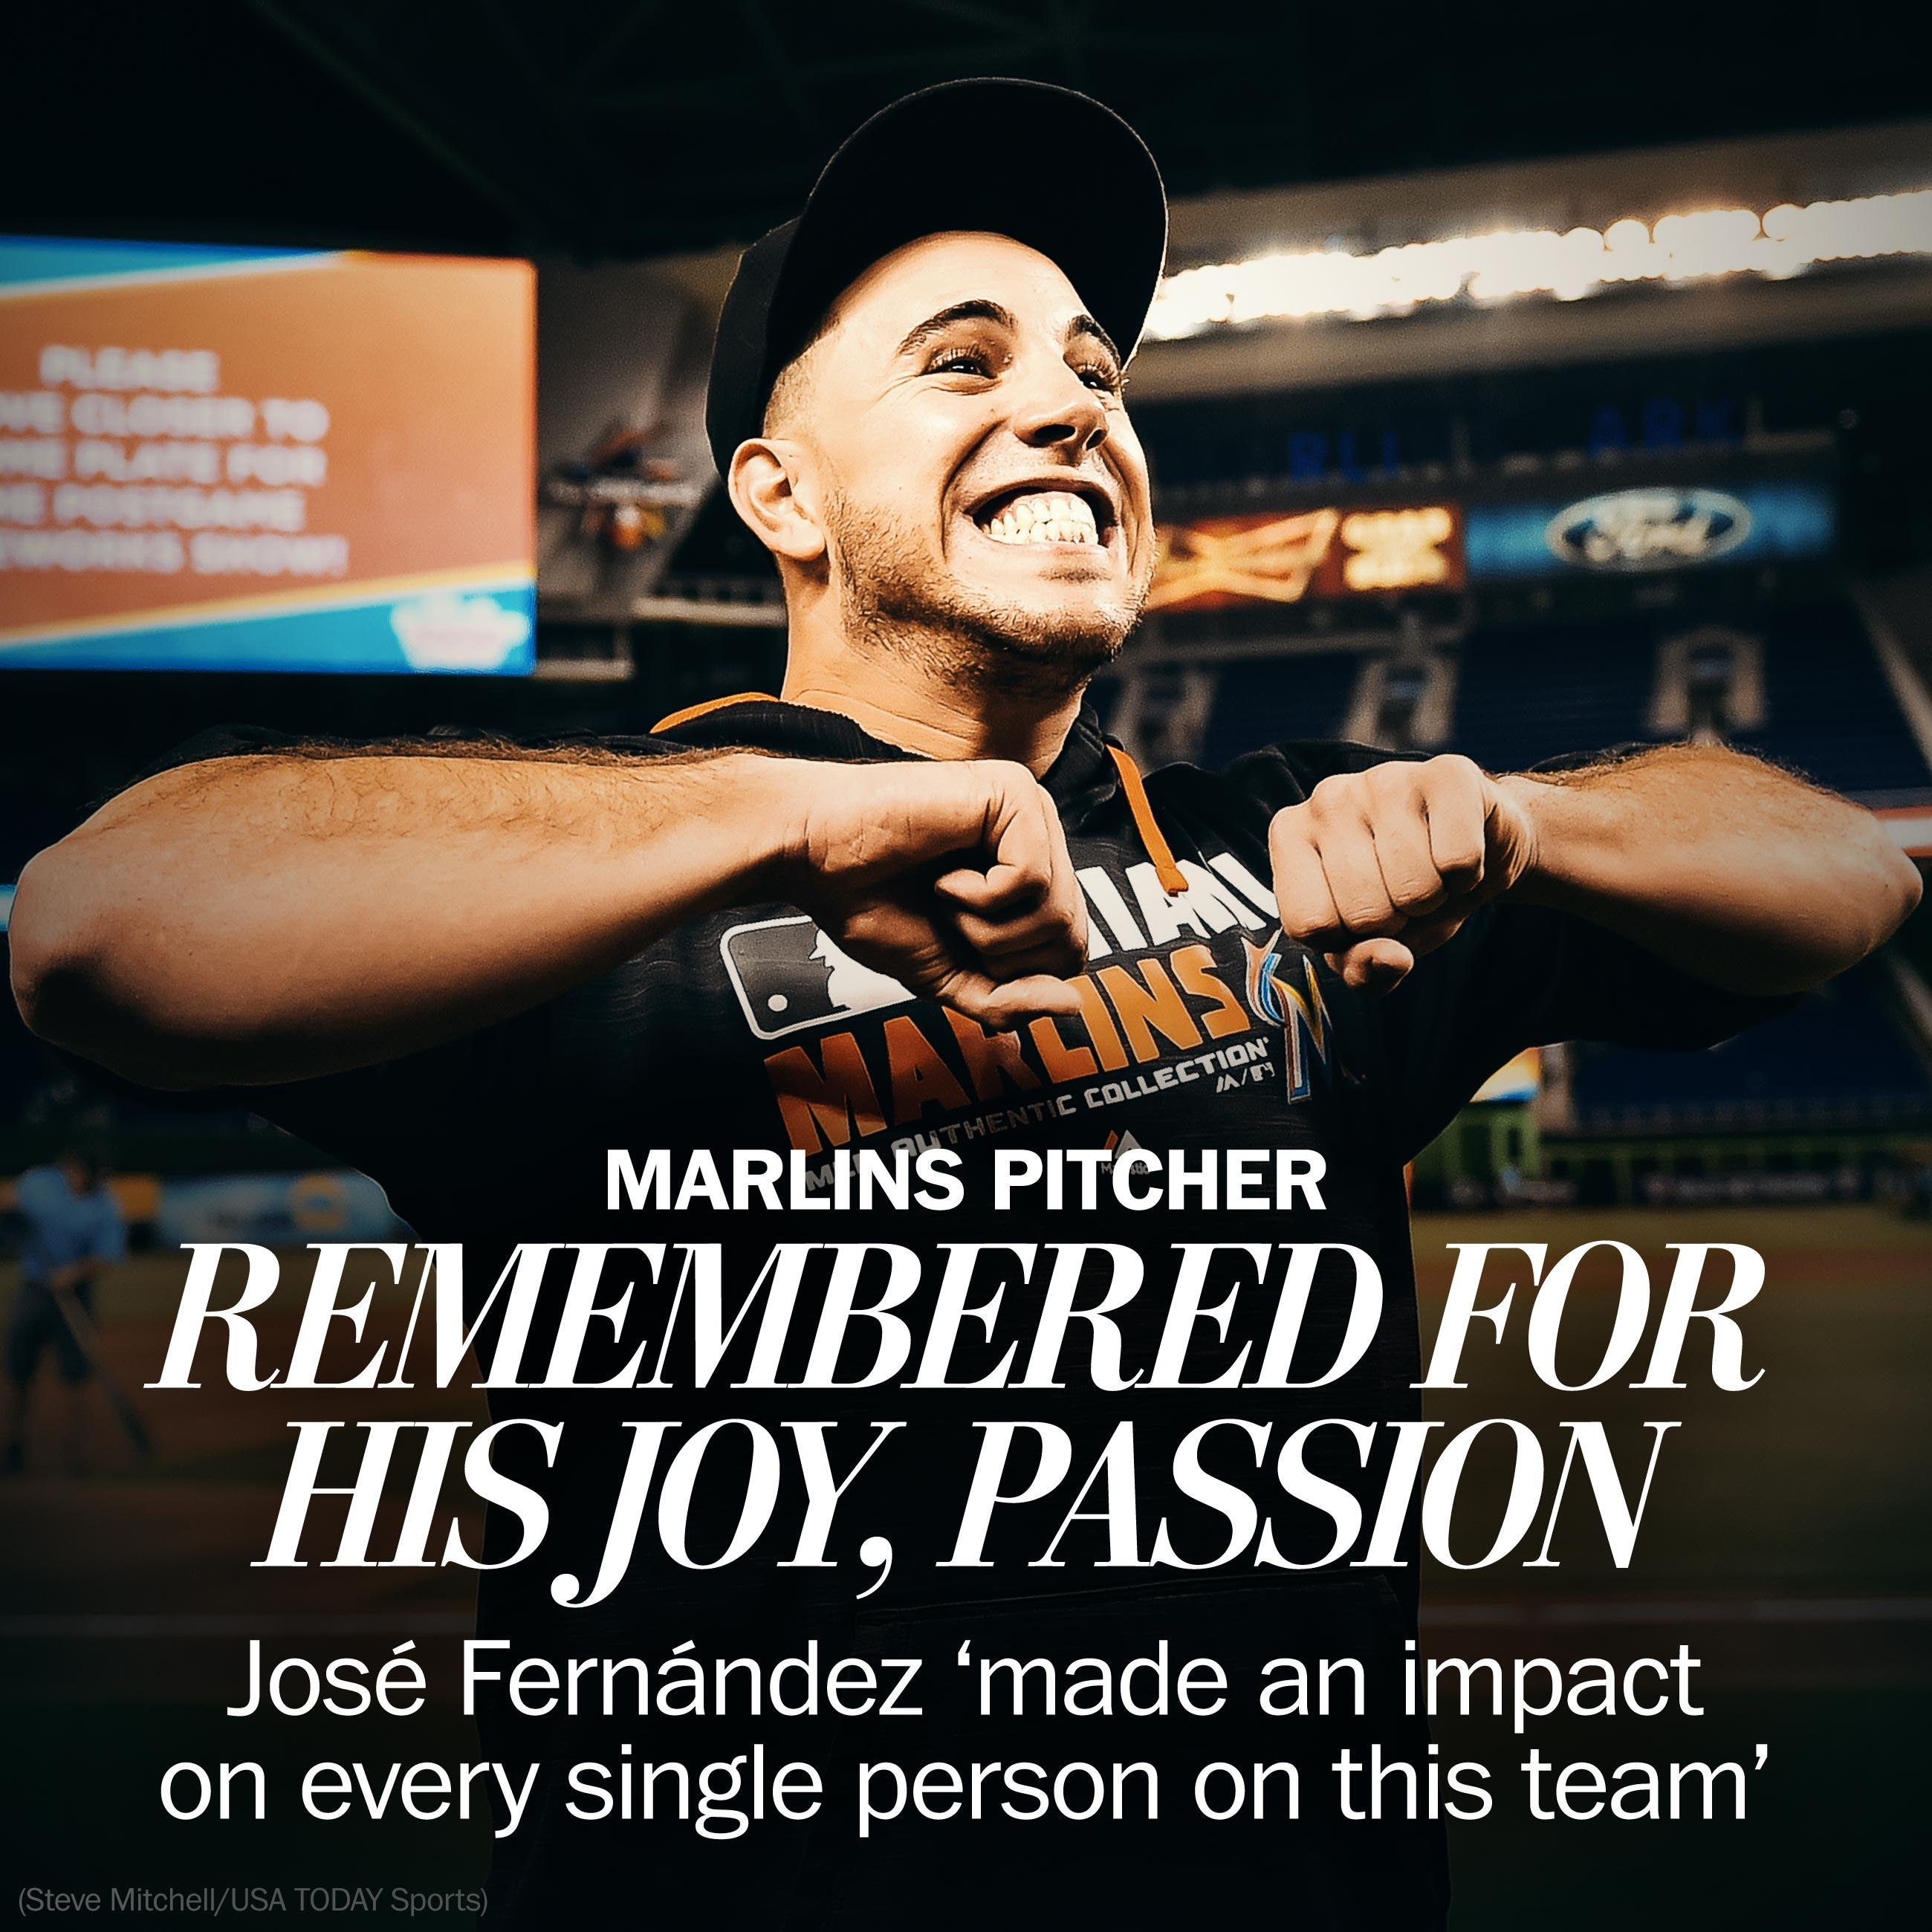 Jose Fernandez's joy on the baseball diamond makes his loss all the more sad